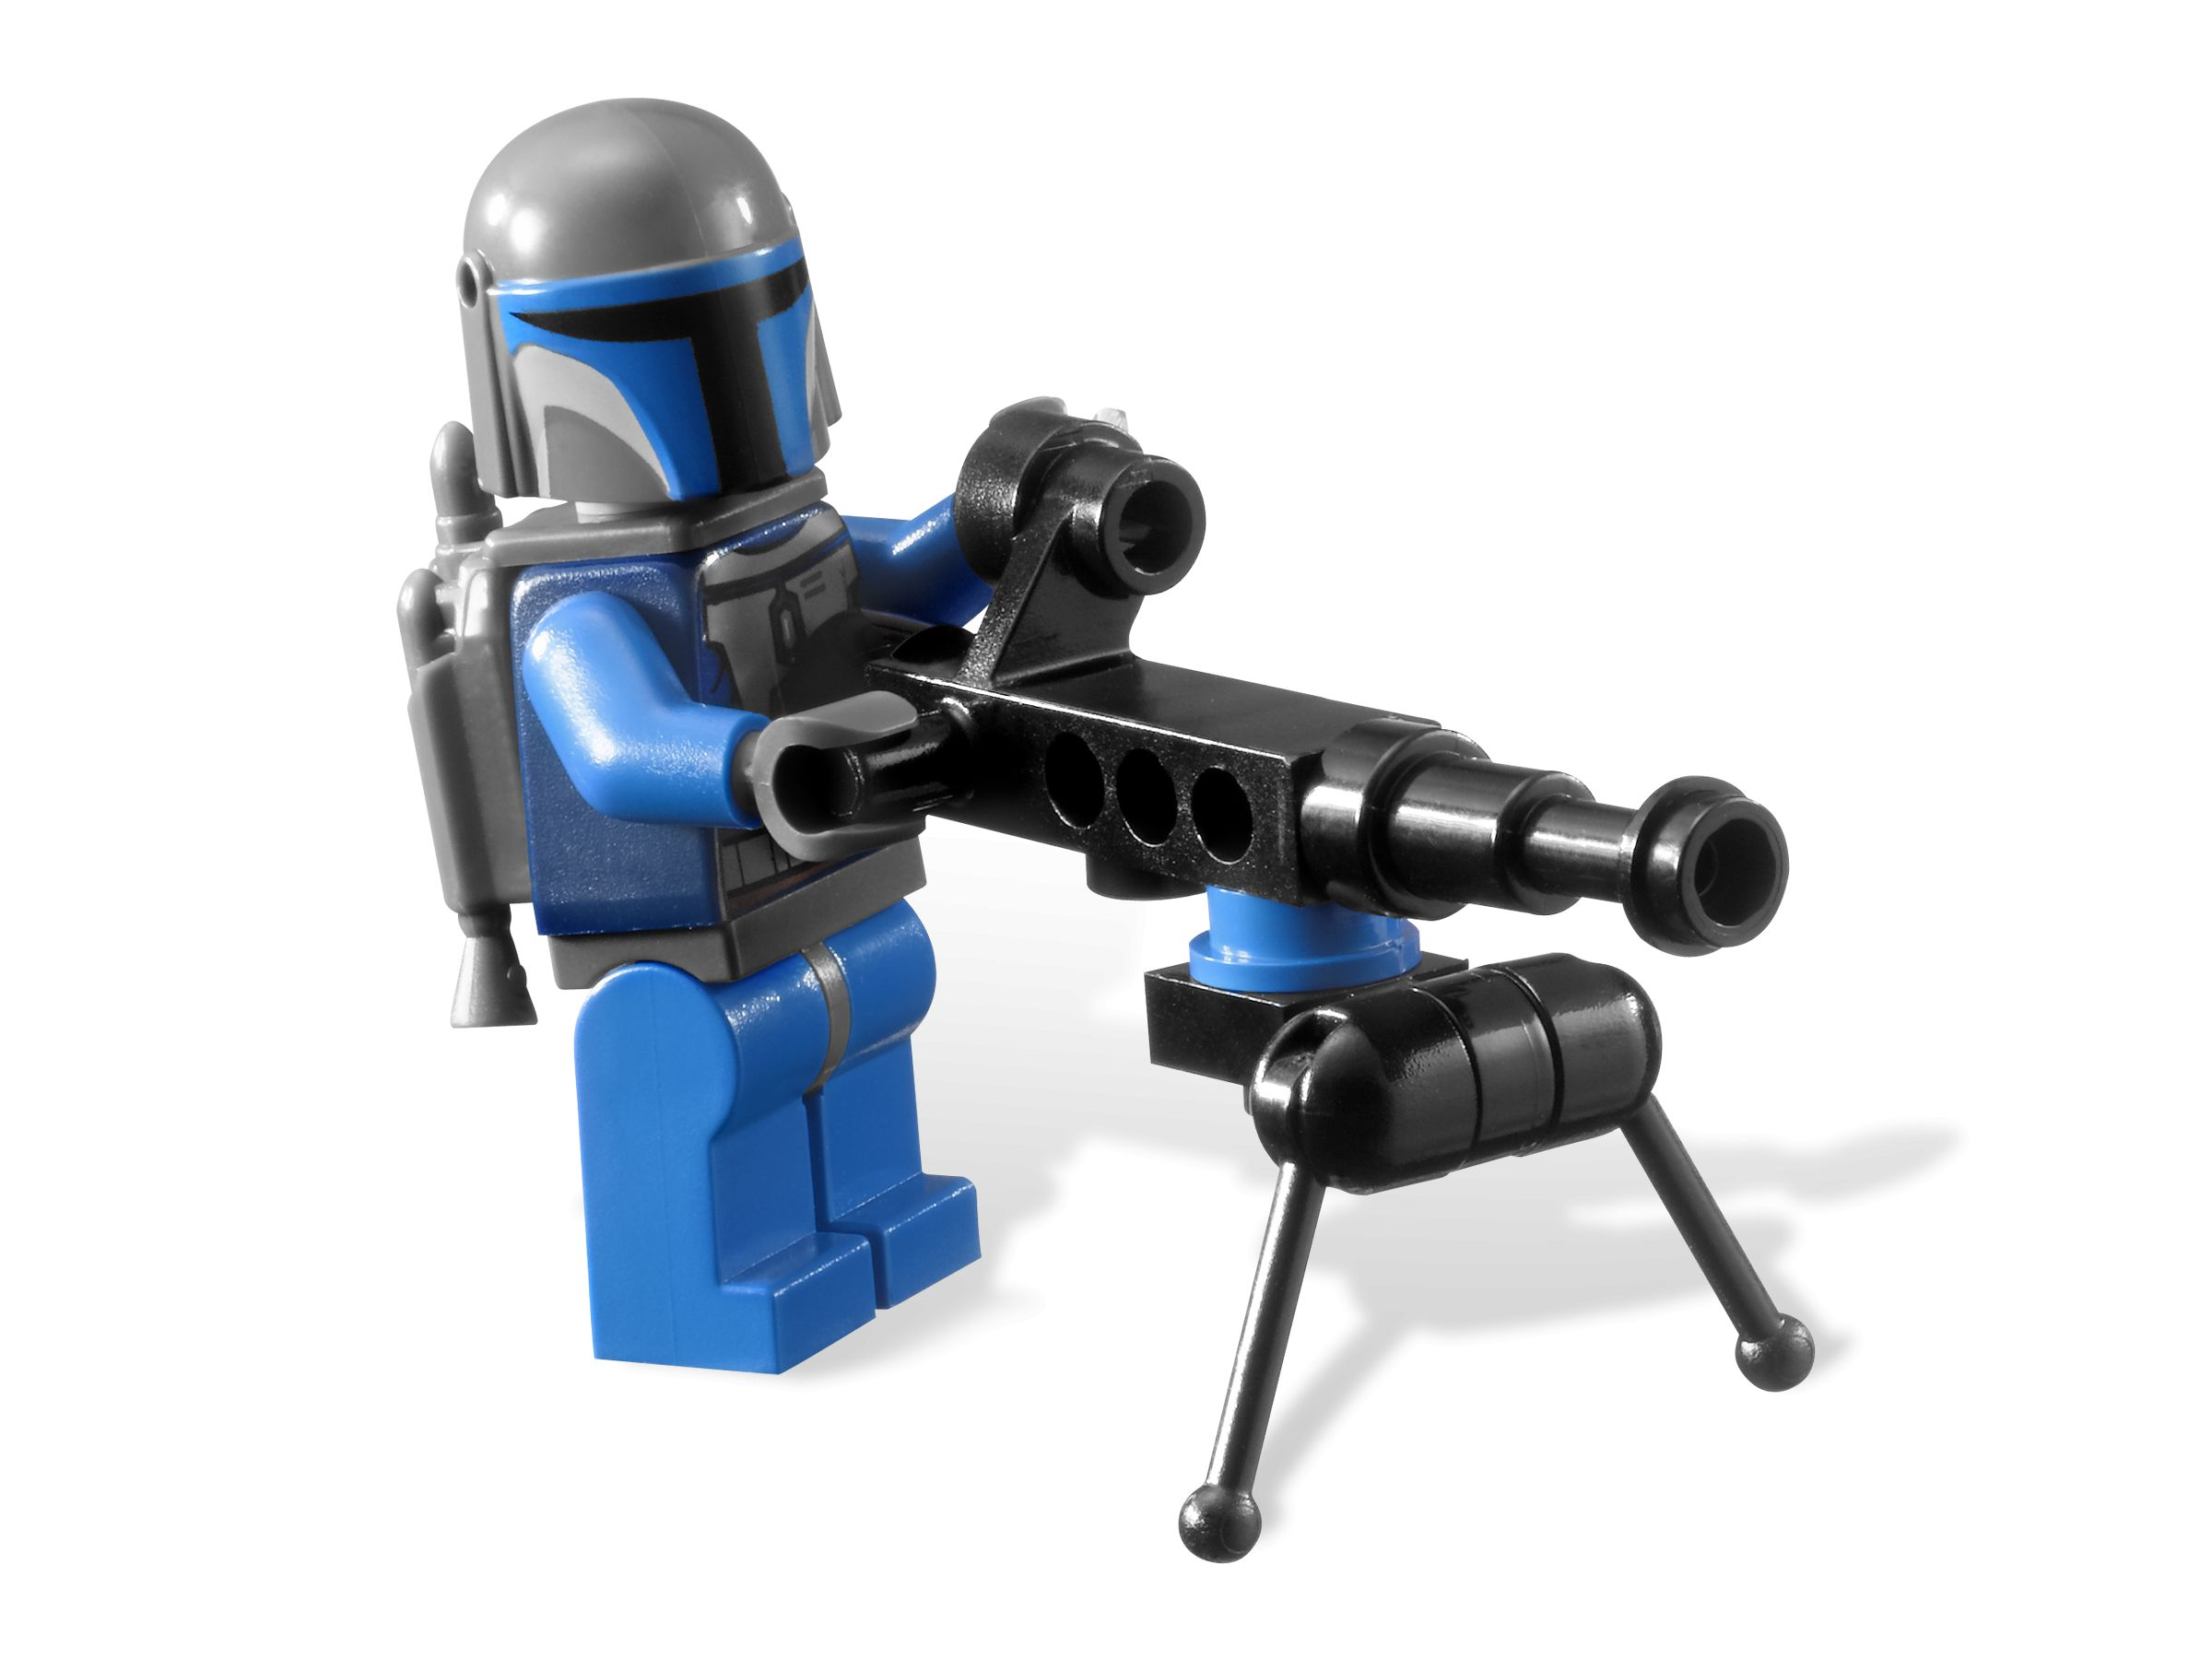 LEGO Star Wars 7914 Mandalorian Battle Pack LEGO_7914_alt4.jpg